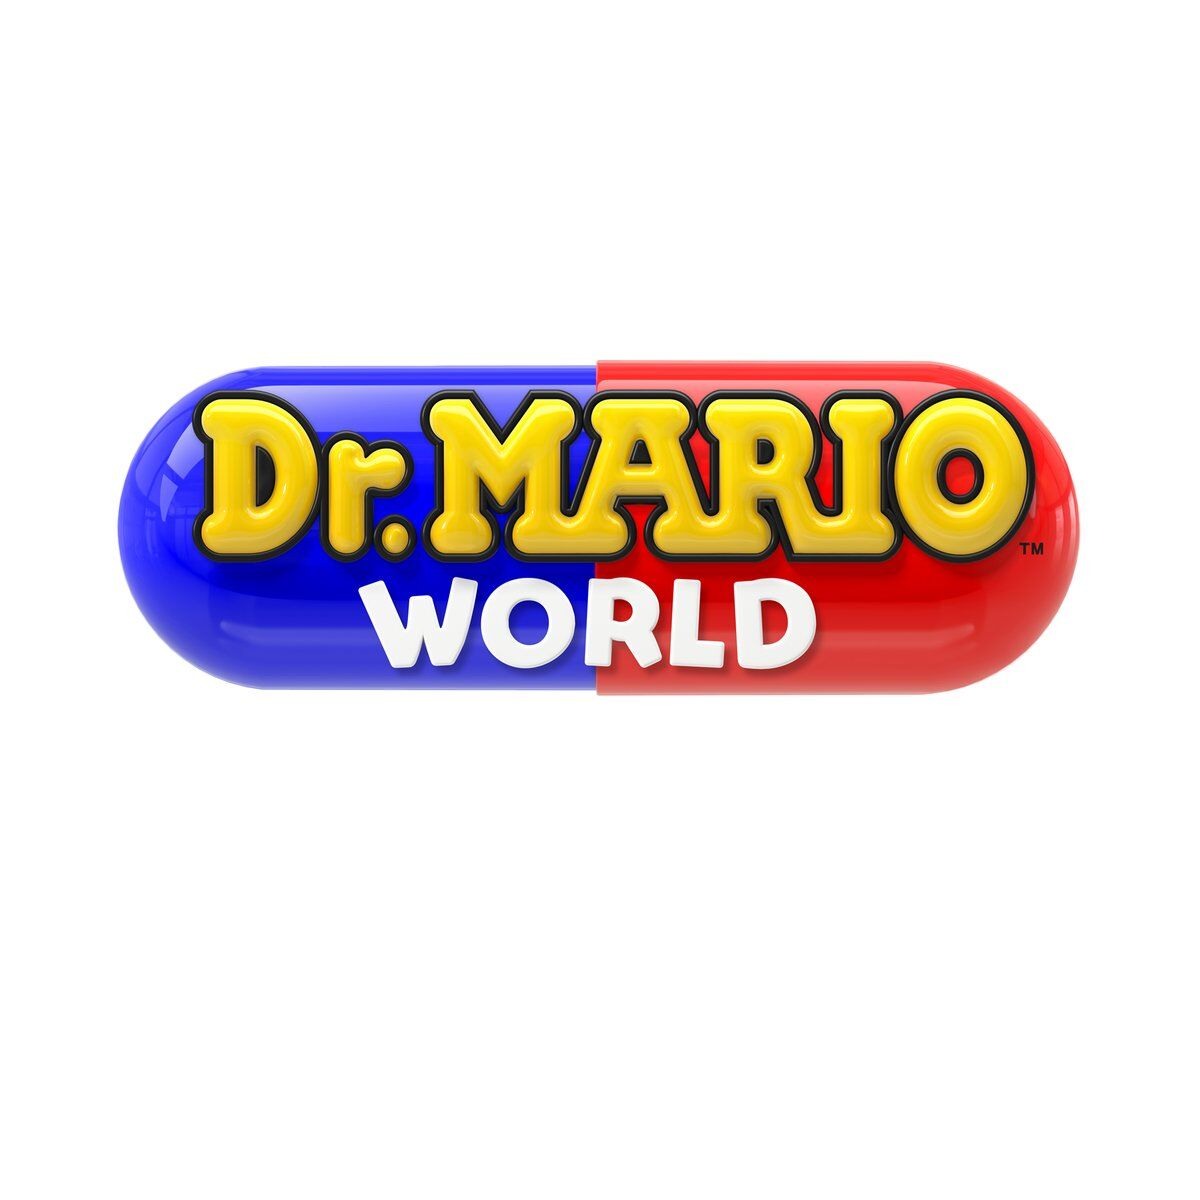 Dr. Mario World prescribes a July 10 release date on iOS, Android